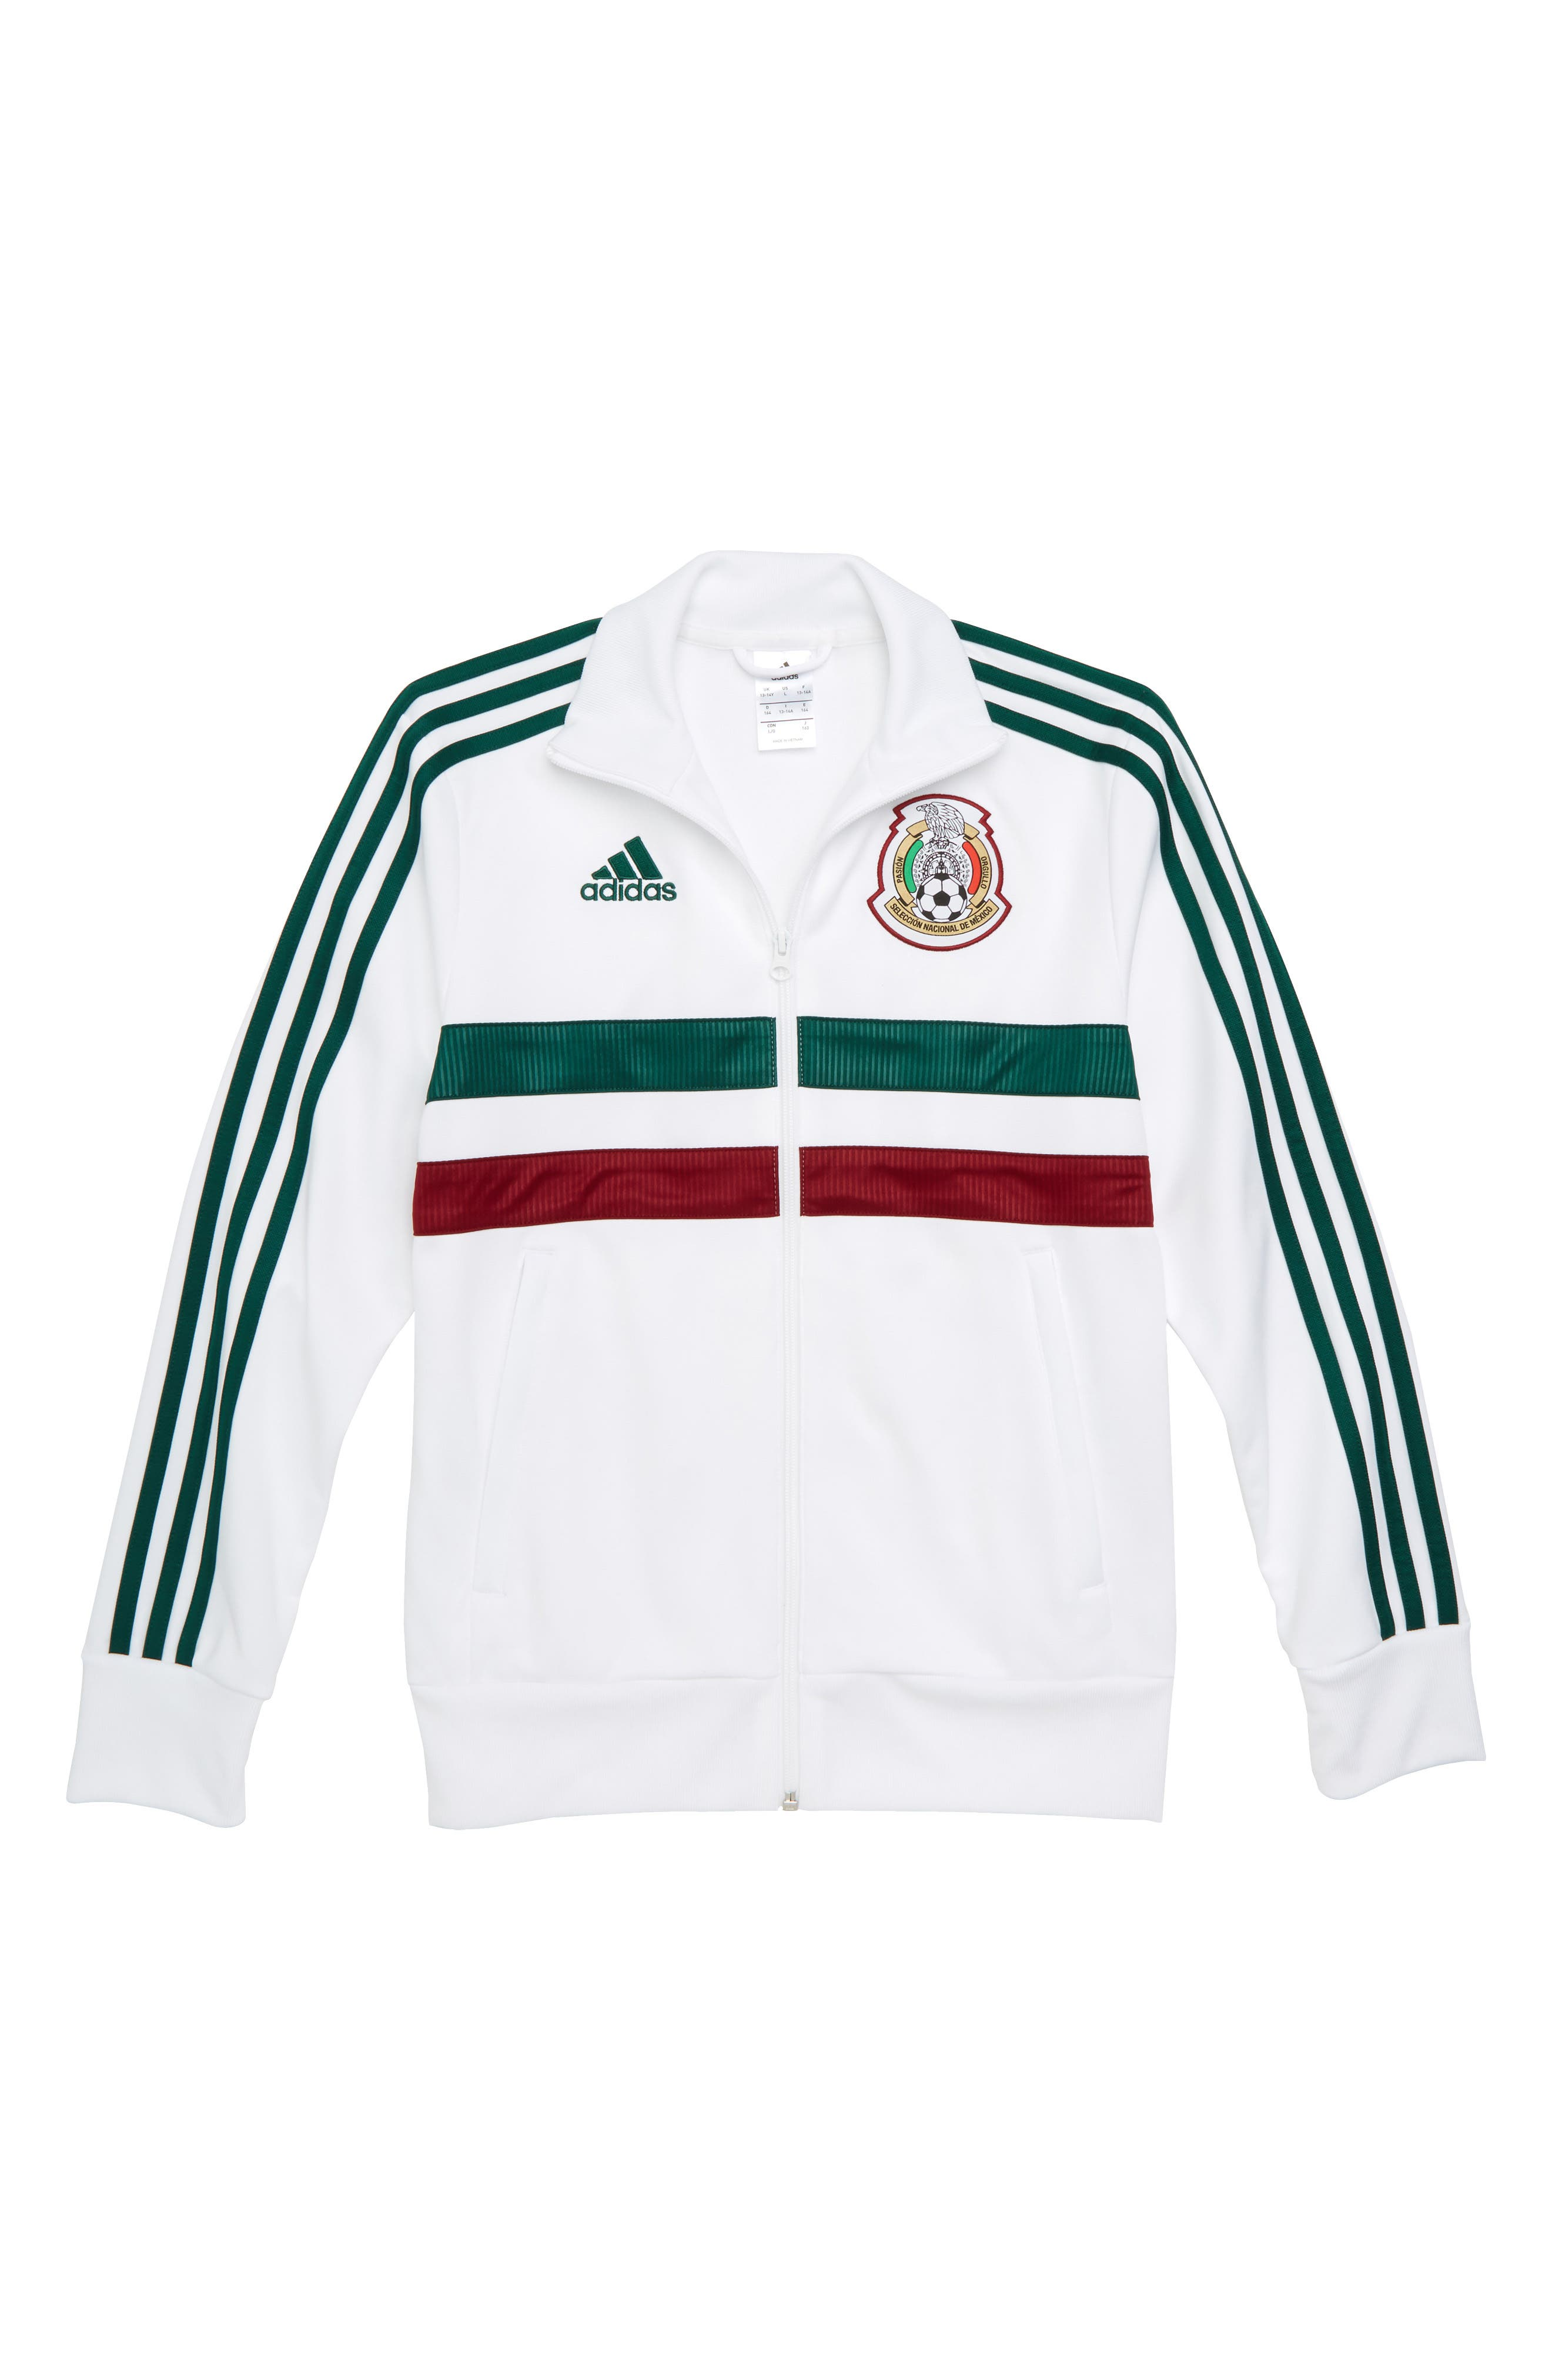 FIFA World Cup Soccer Mexico Jacket,                             Main thumbnail 1, color,                             White/ Collegiate Green